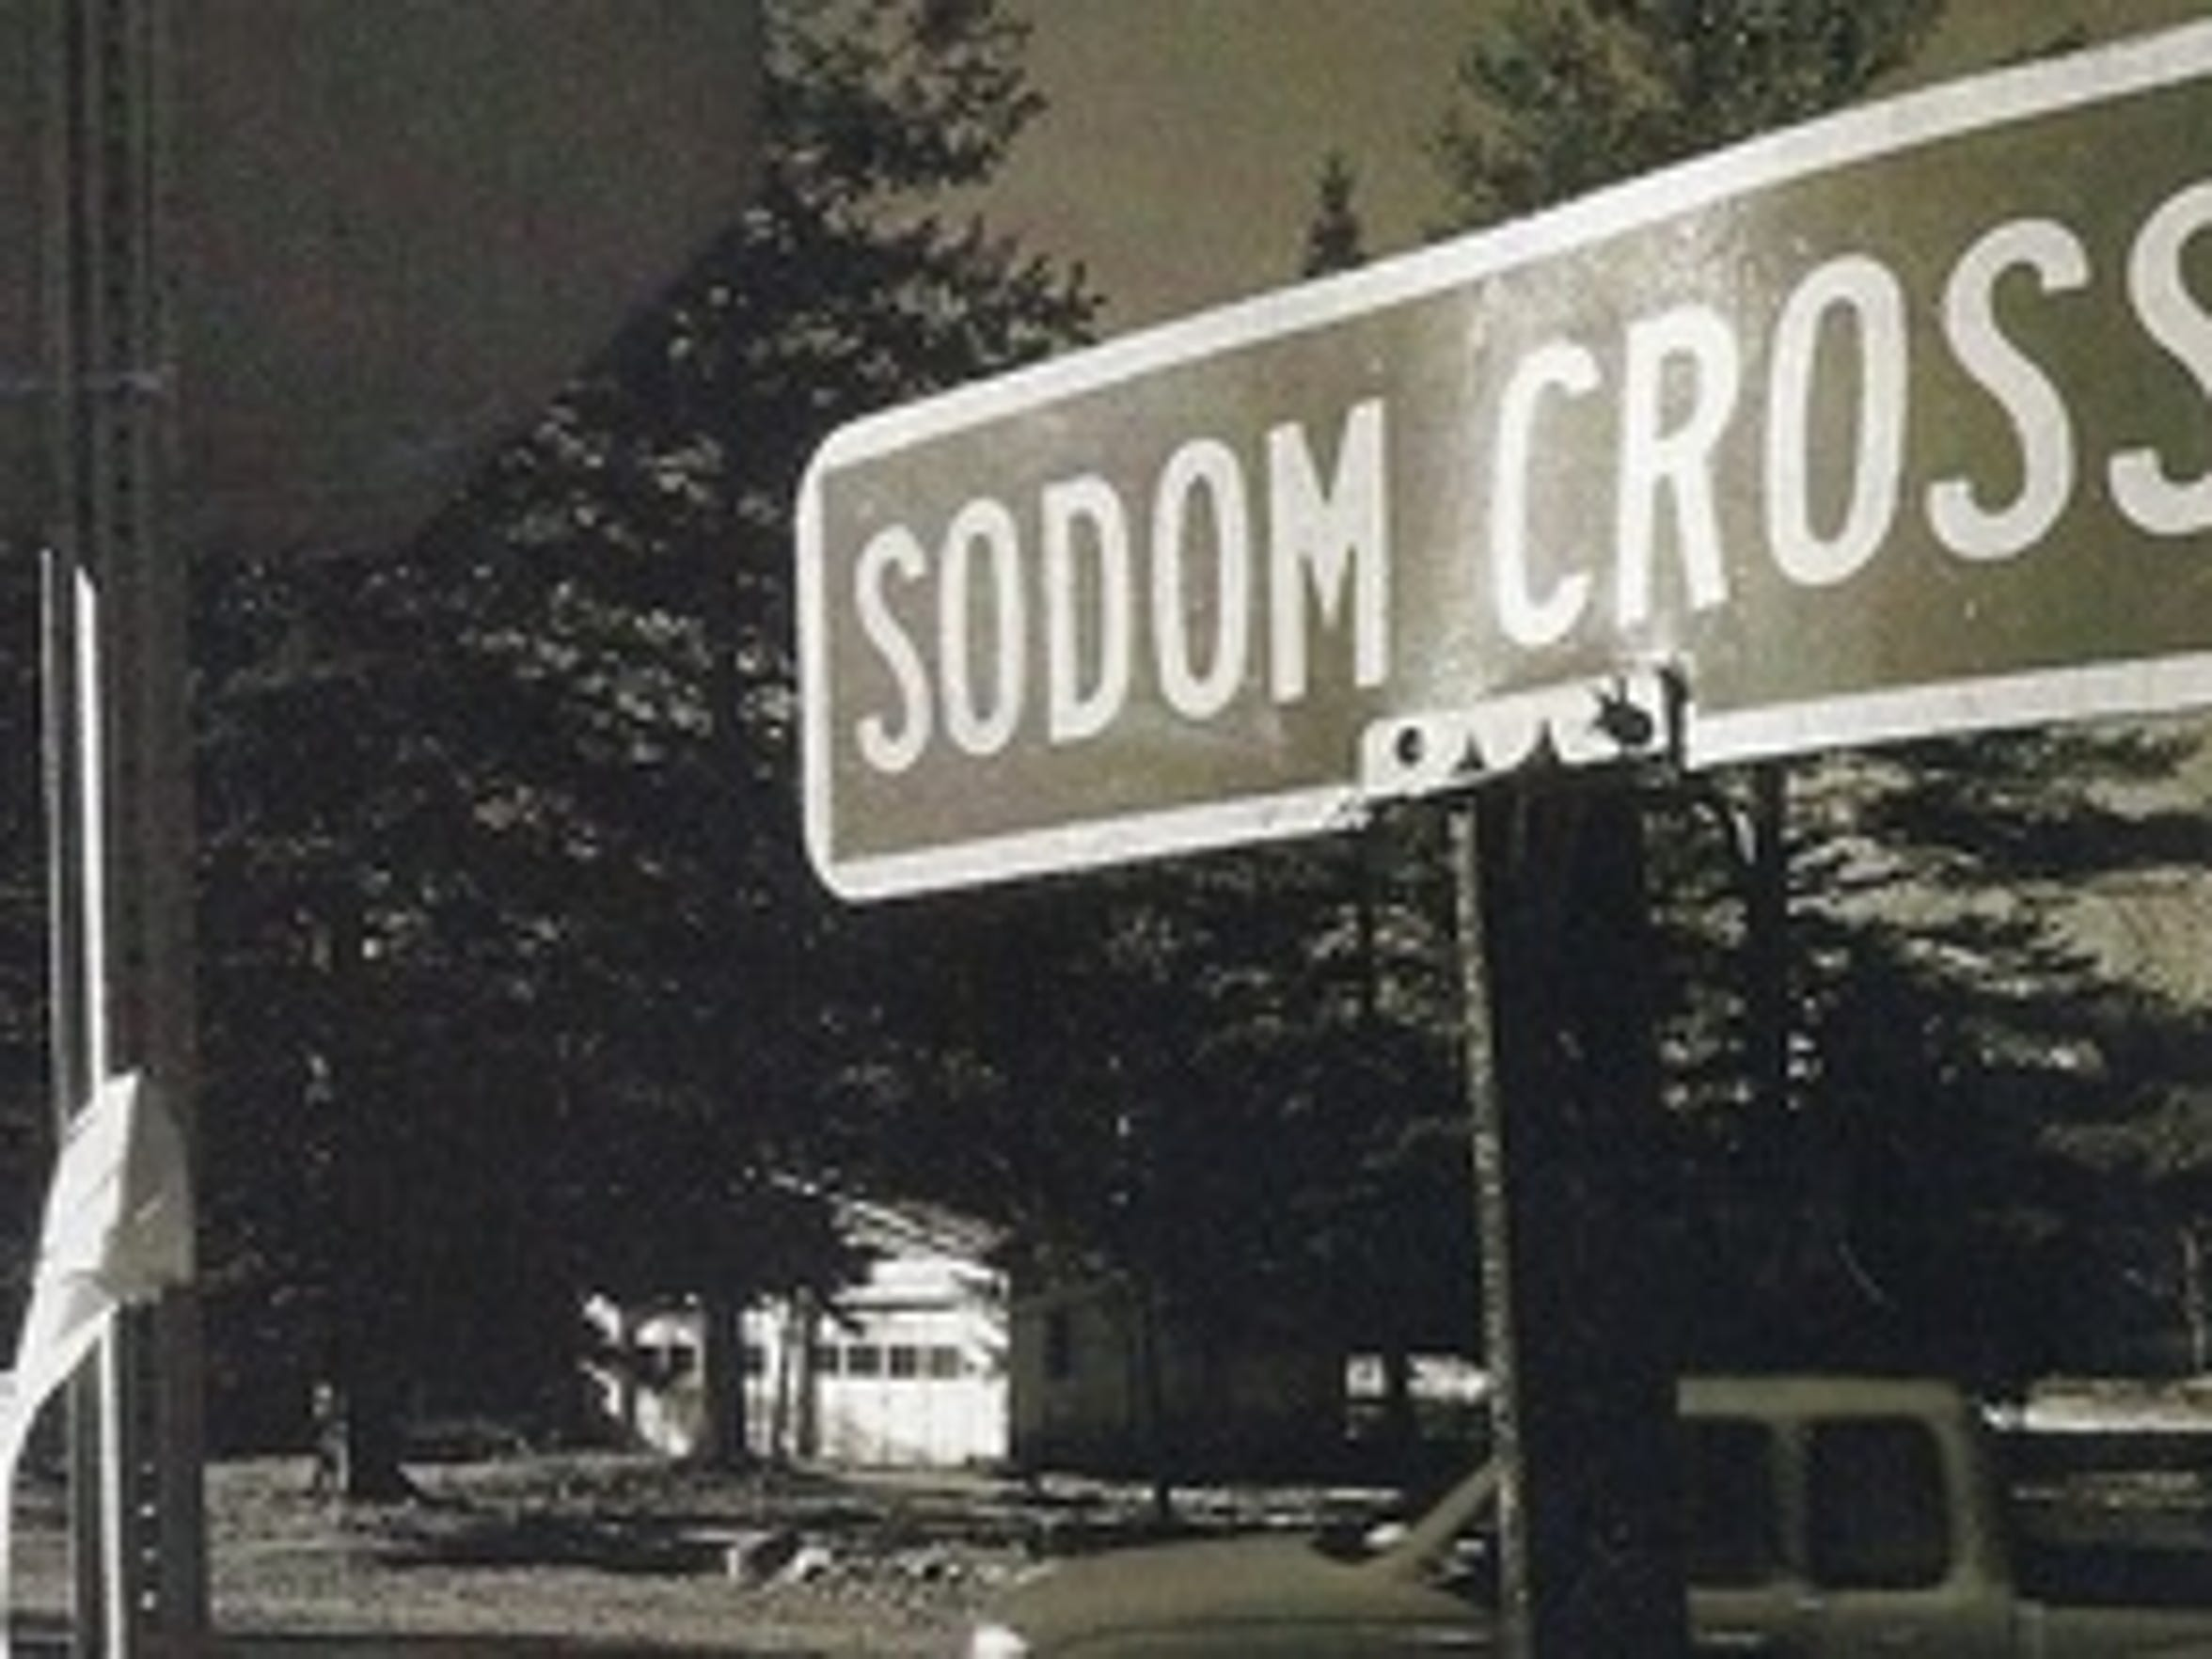 Sodom Cross Road, a remnant of the Warren County settlement once named Sodom.